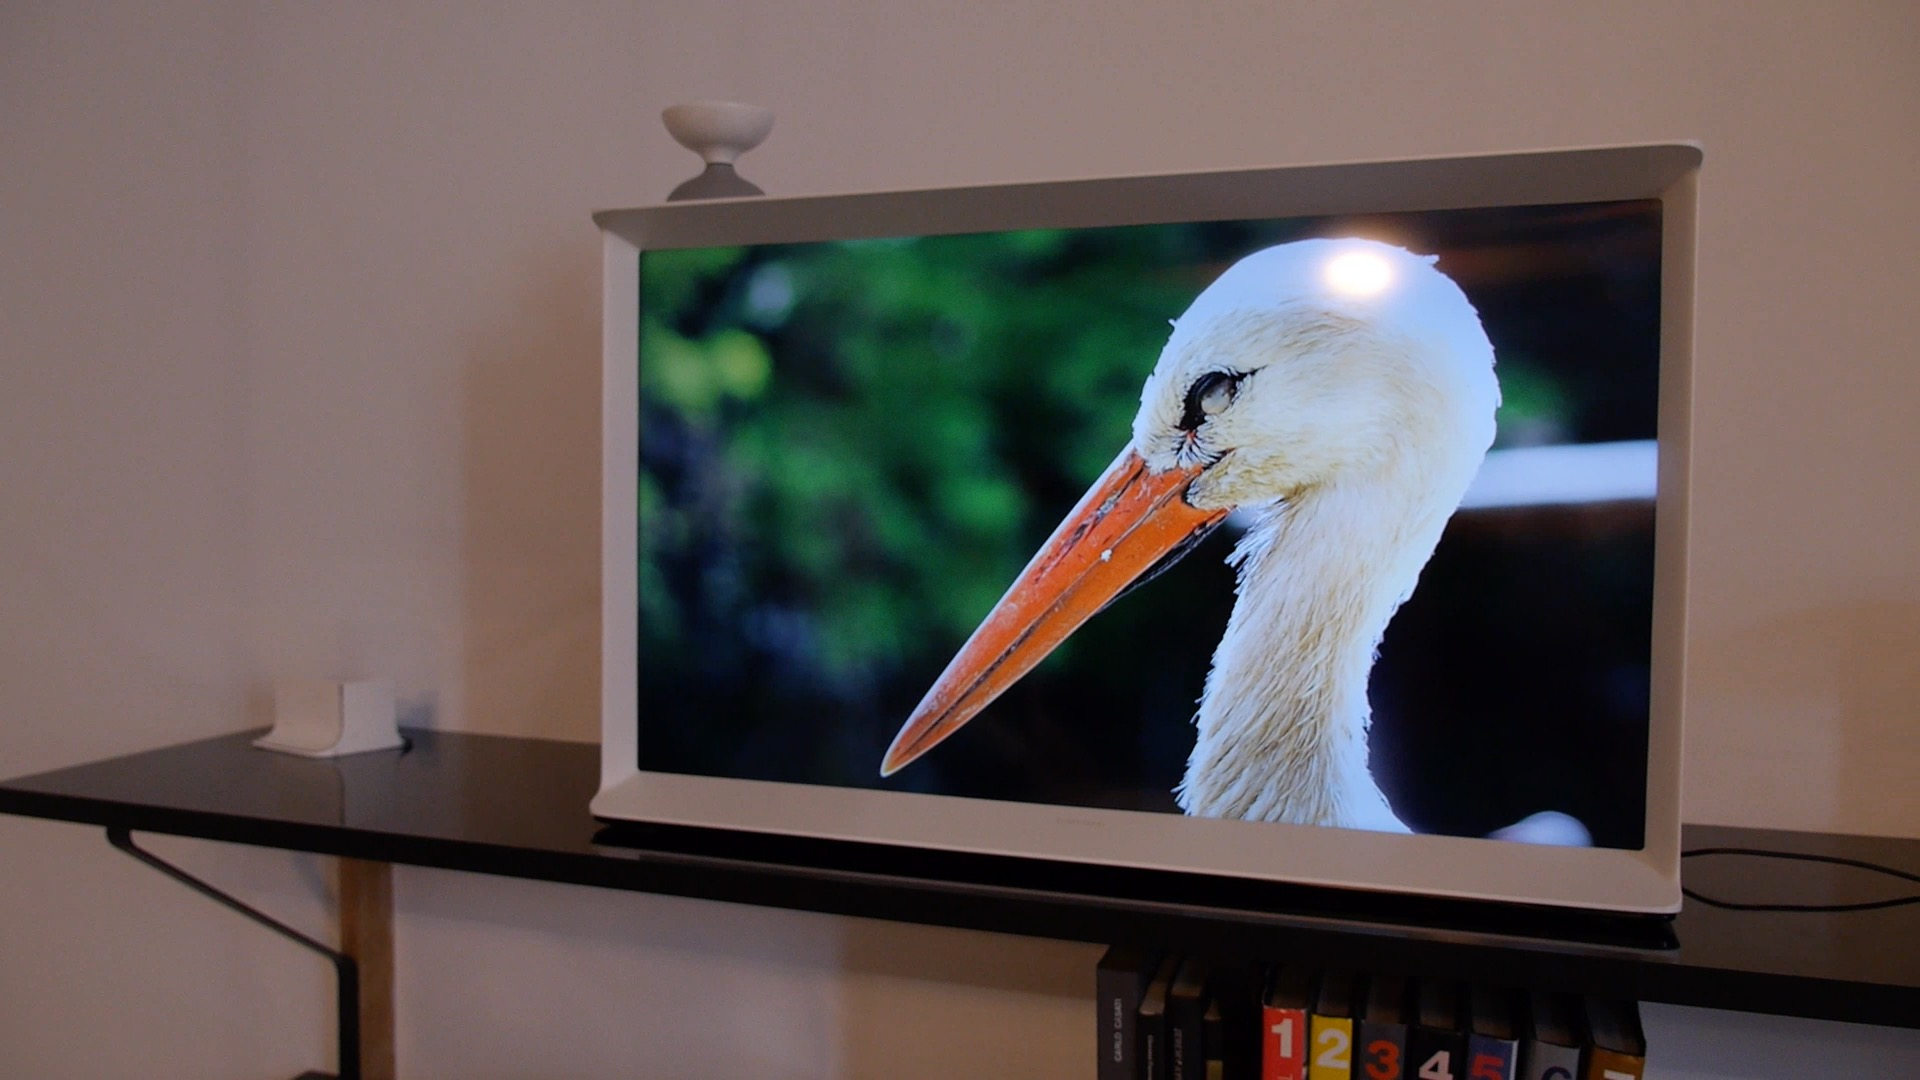 This Samsung TV is too cool for your living room